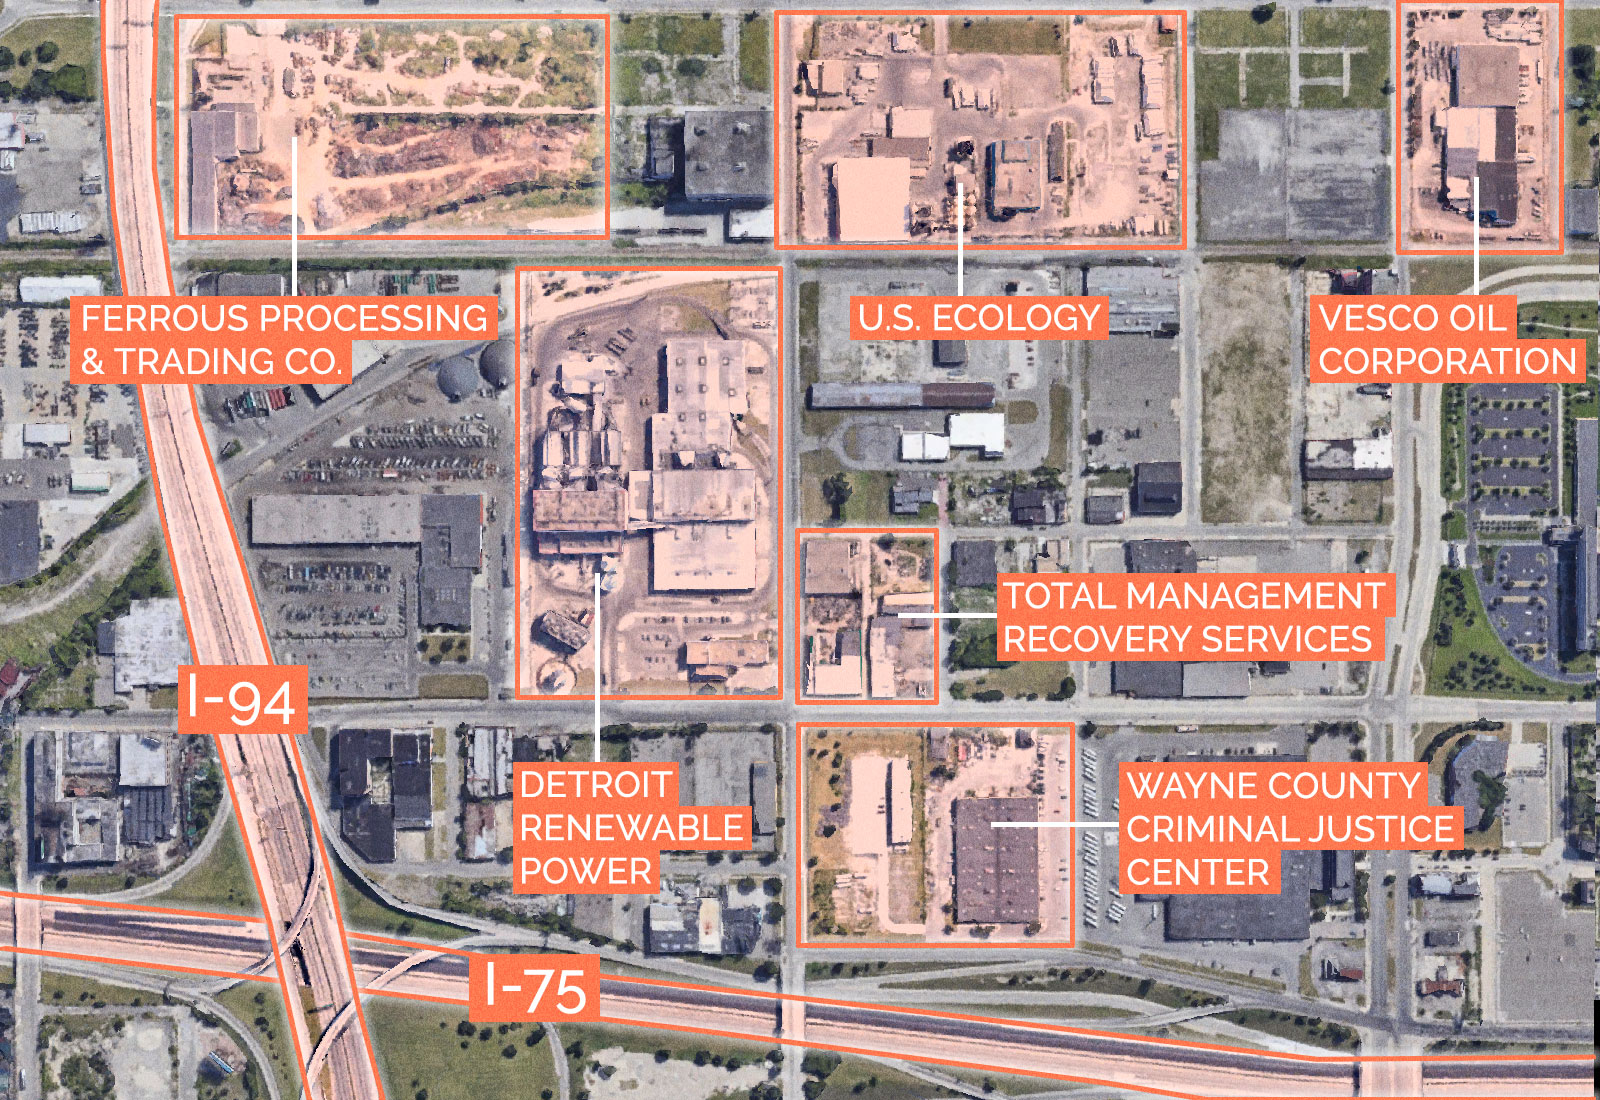 An aerial map of various sites around Wayne County Criminal Justice Center in Detroit, Michigan